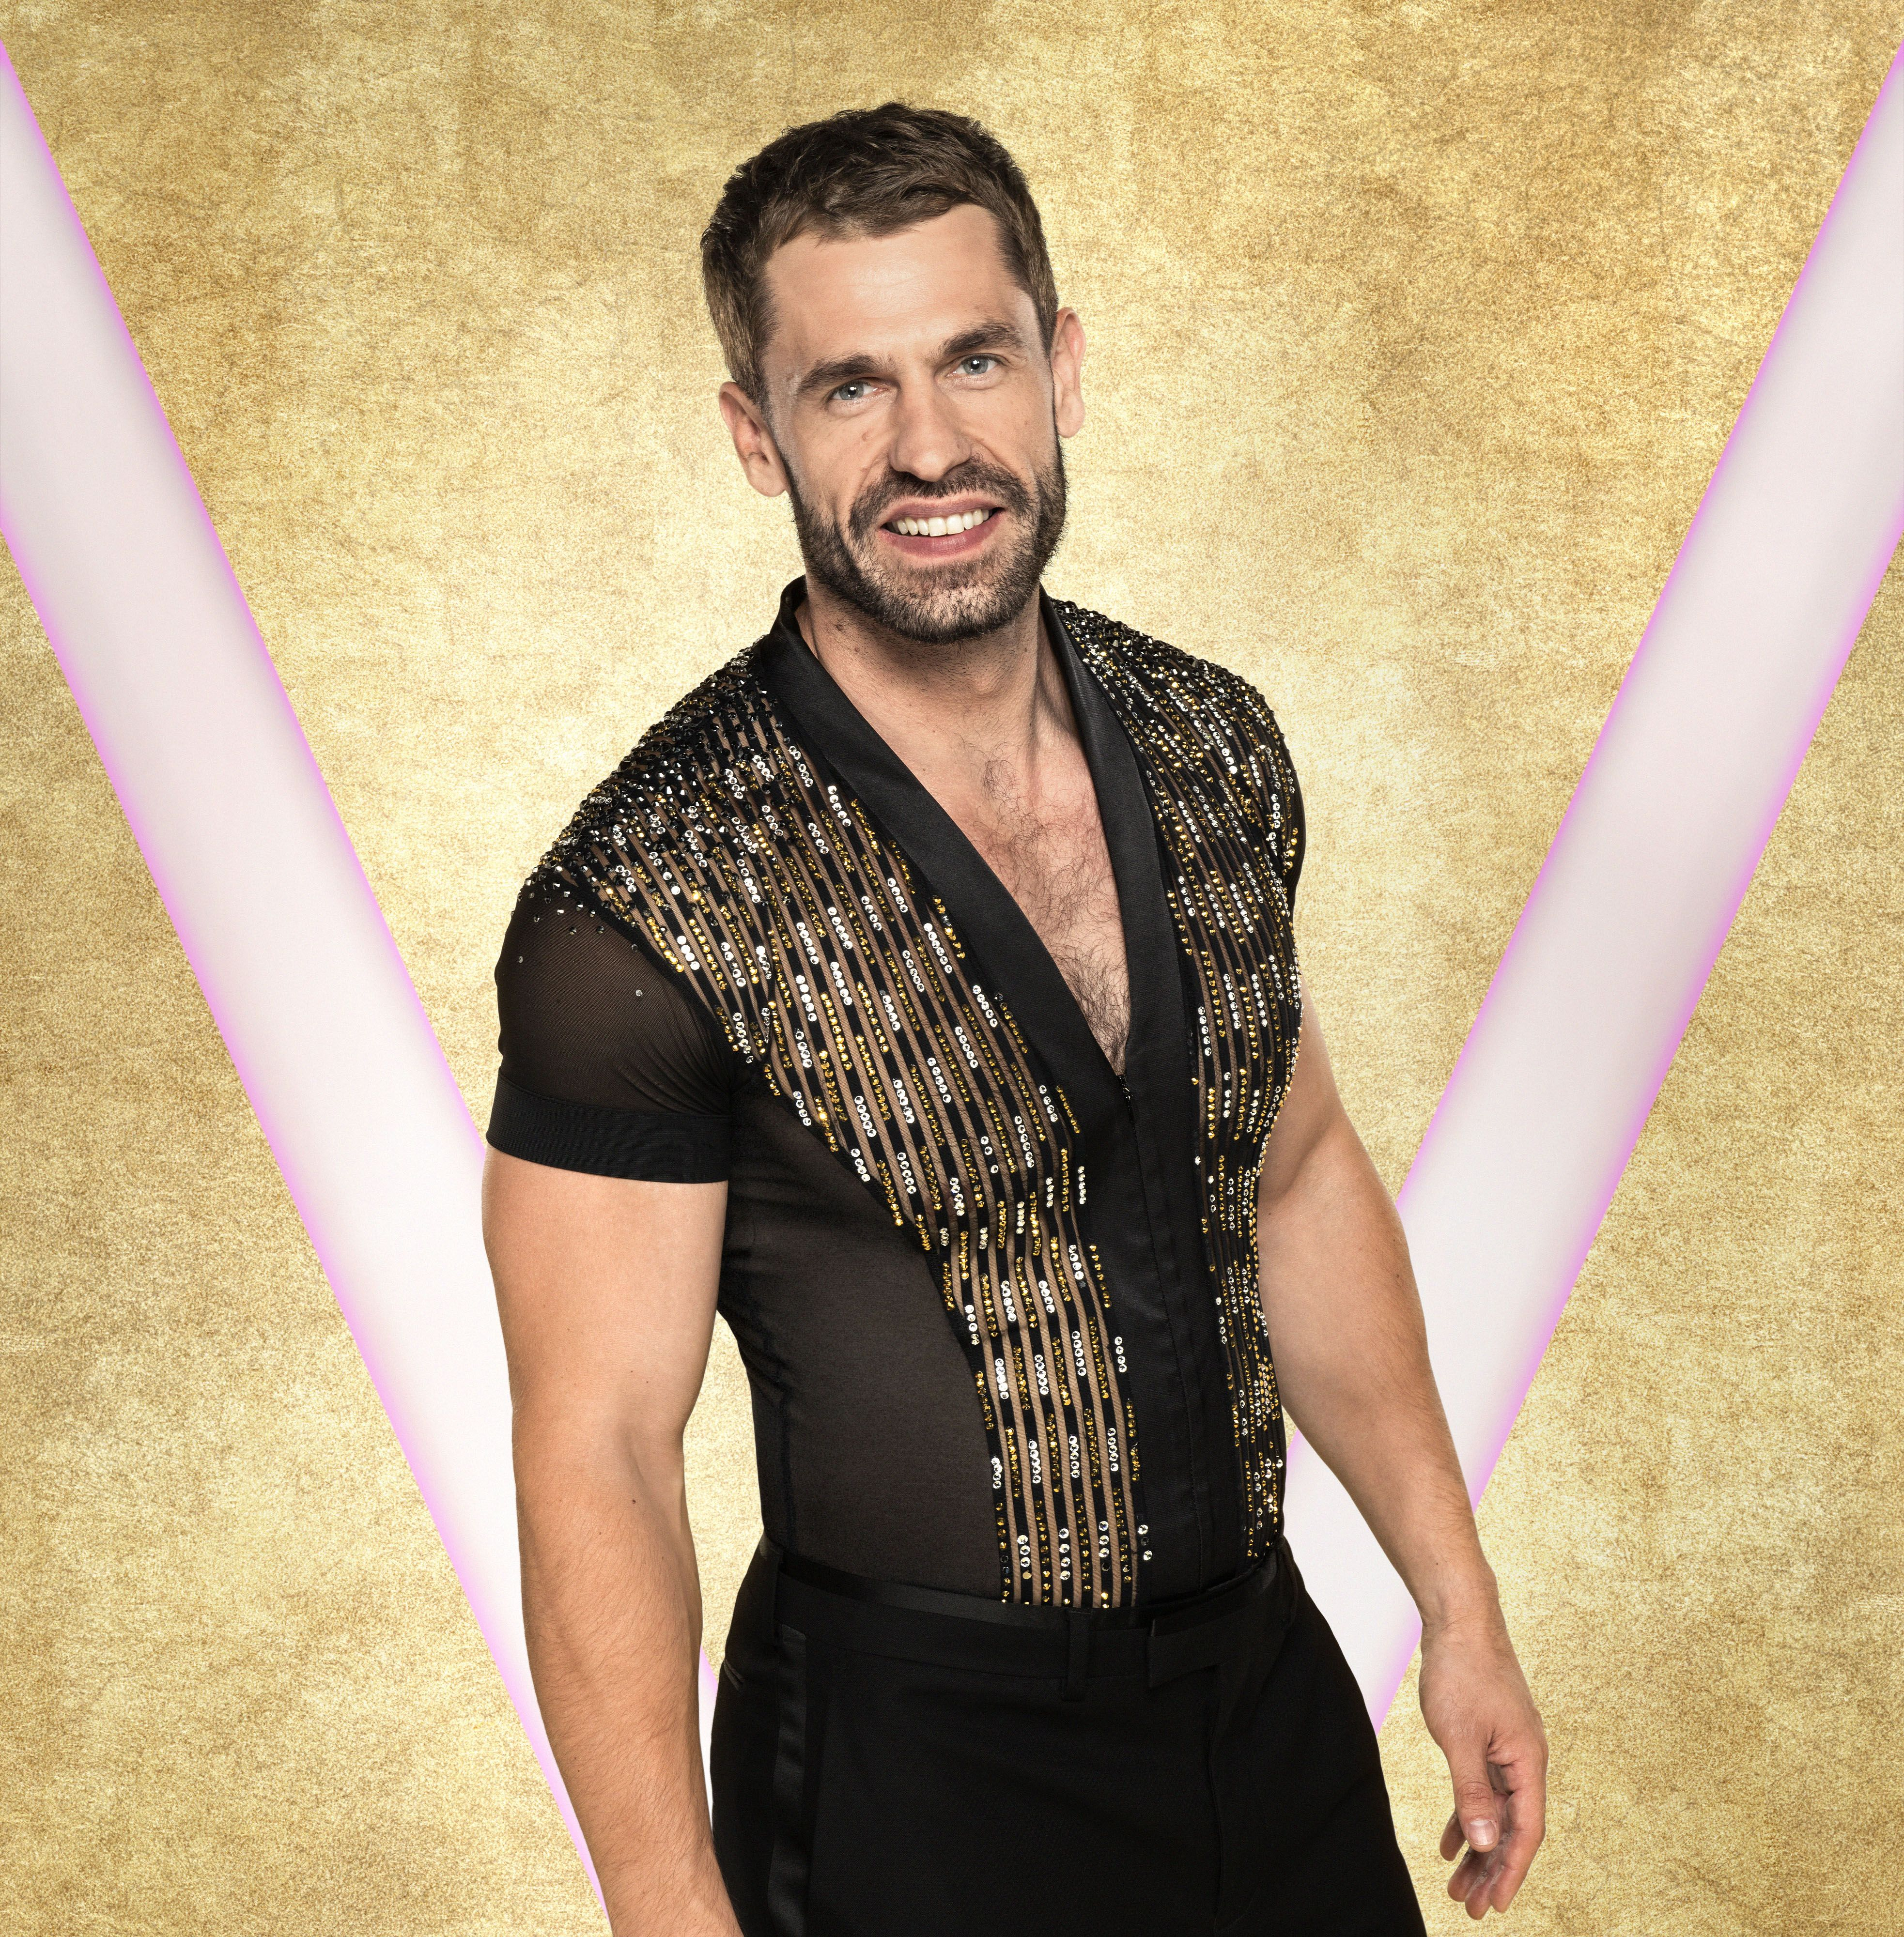 Strictly's Kelvin Fletcher is all for getting dressed up in glitter and sequins